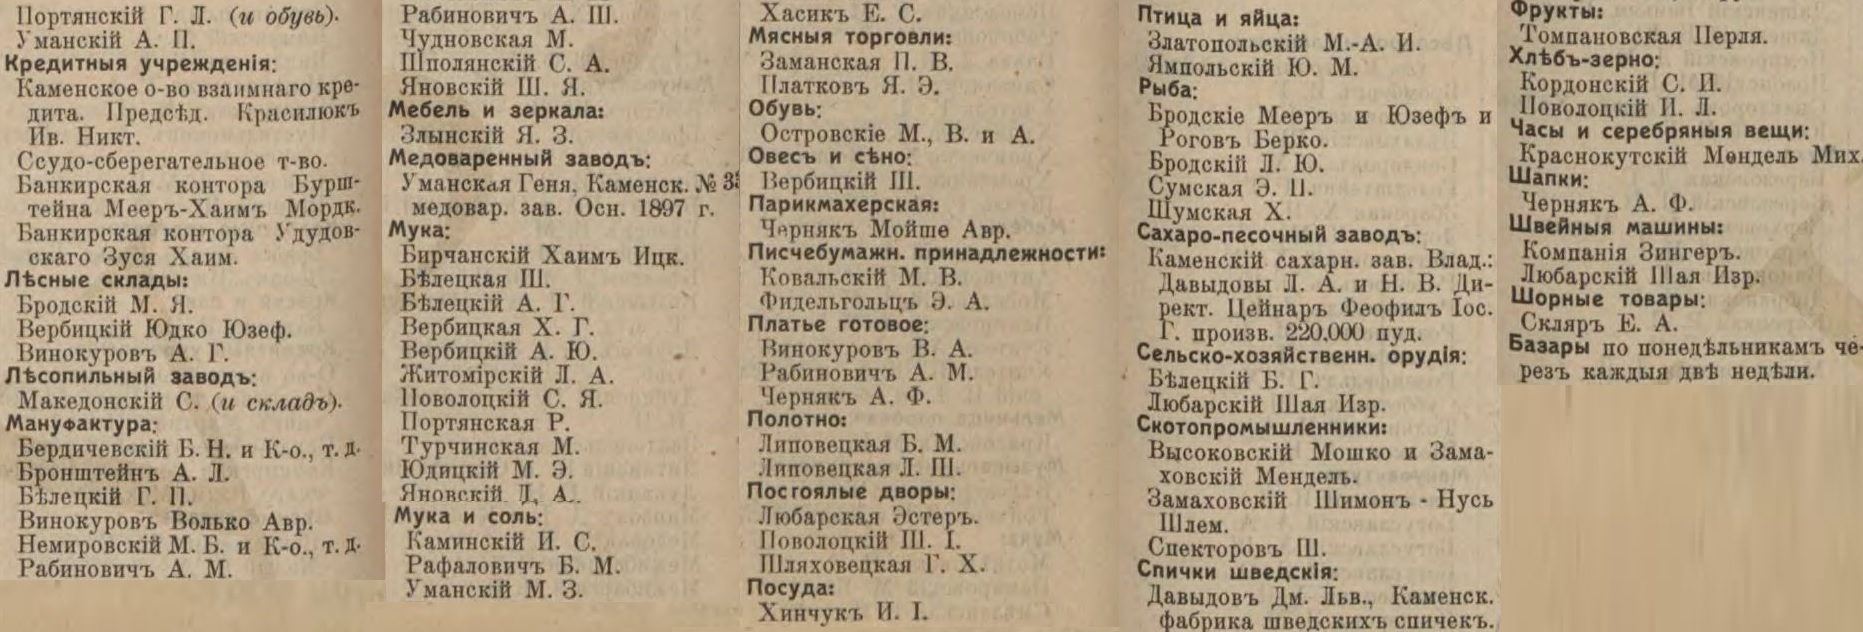 Kamenka entrepreneurs list from Russian Empire Business Directories by 1913. Page 2